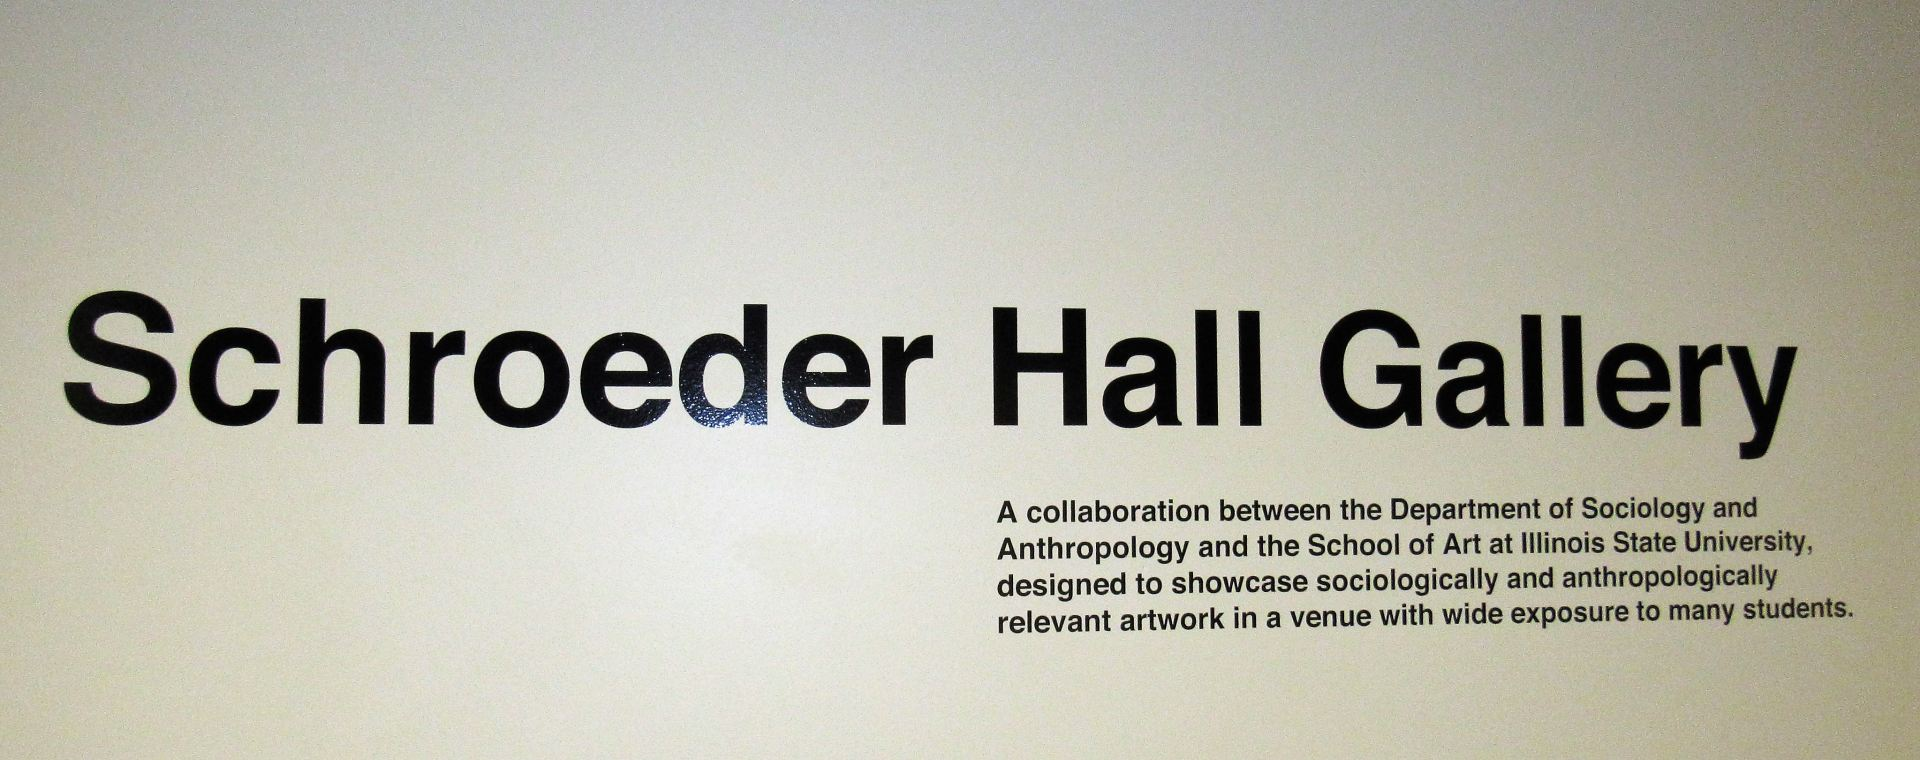 Text: The Schroeder Hall Gallery is a collaboration between the Department of Sociology and Anthropology and the Wonsook Kim College of Fine Arts at Illinois State University and is designed to showcase sociologically and anthropologically relevant artwork in a venue with wide exposure to students.